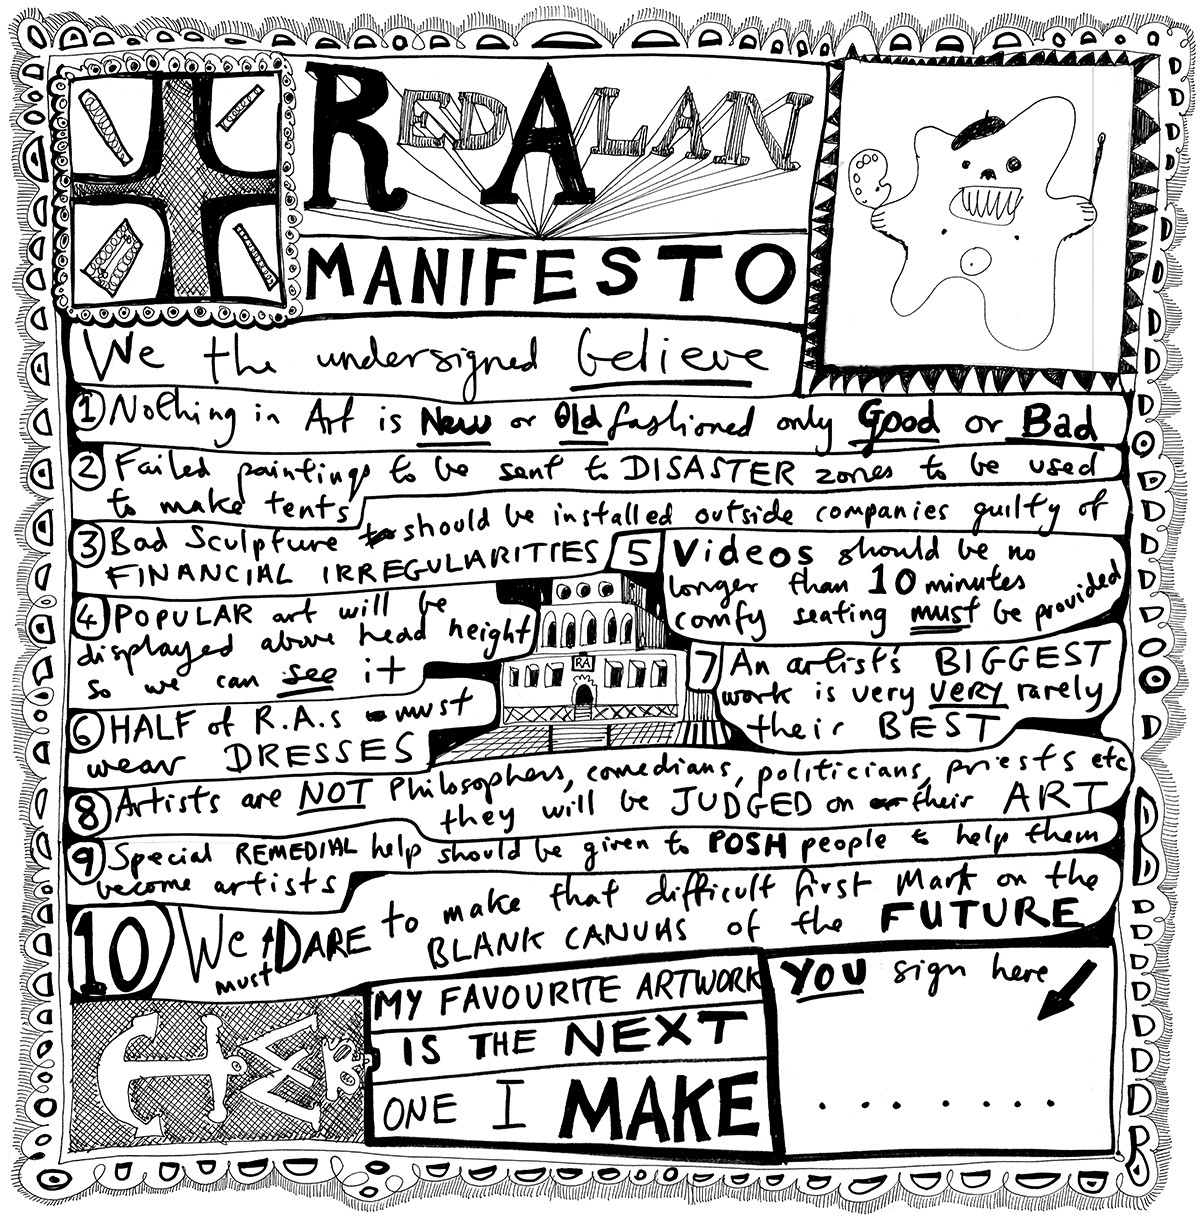 Here is a list of inspiring manifestos from a variety of different perspectives. Please let me know if there are others you'd like to add:   Patagonia's Mission    Guerrilla Girls    Mundane Afrofuturists Manifesto  (also an  inspiring documentary  about it)   Bruce Mau's an Incomplete Manifesto for Growth    Permaculture Principles    1000 Manifestos